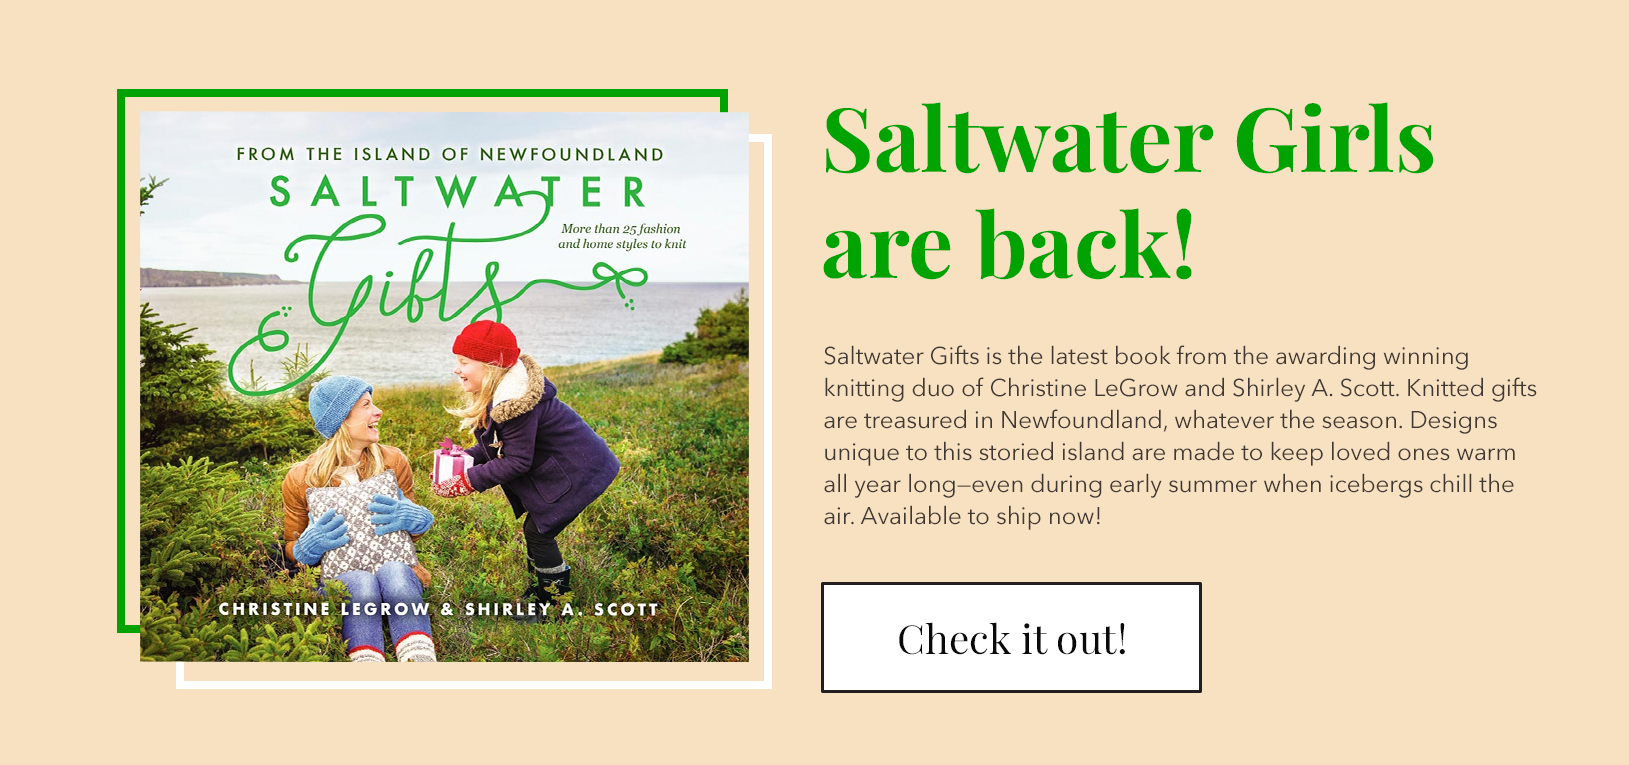 """Saltwater Girls are back! Shop Saltwater's latest book """"Saltwater Gifts"""" Full of adorable knitting patterns to share with your loved ones"""